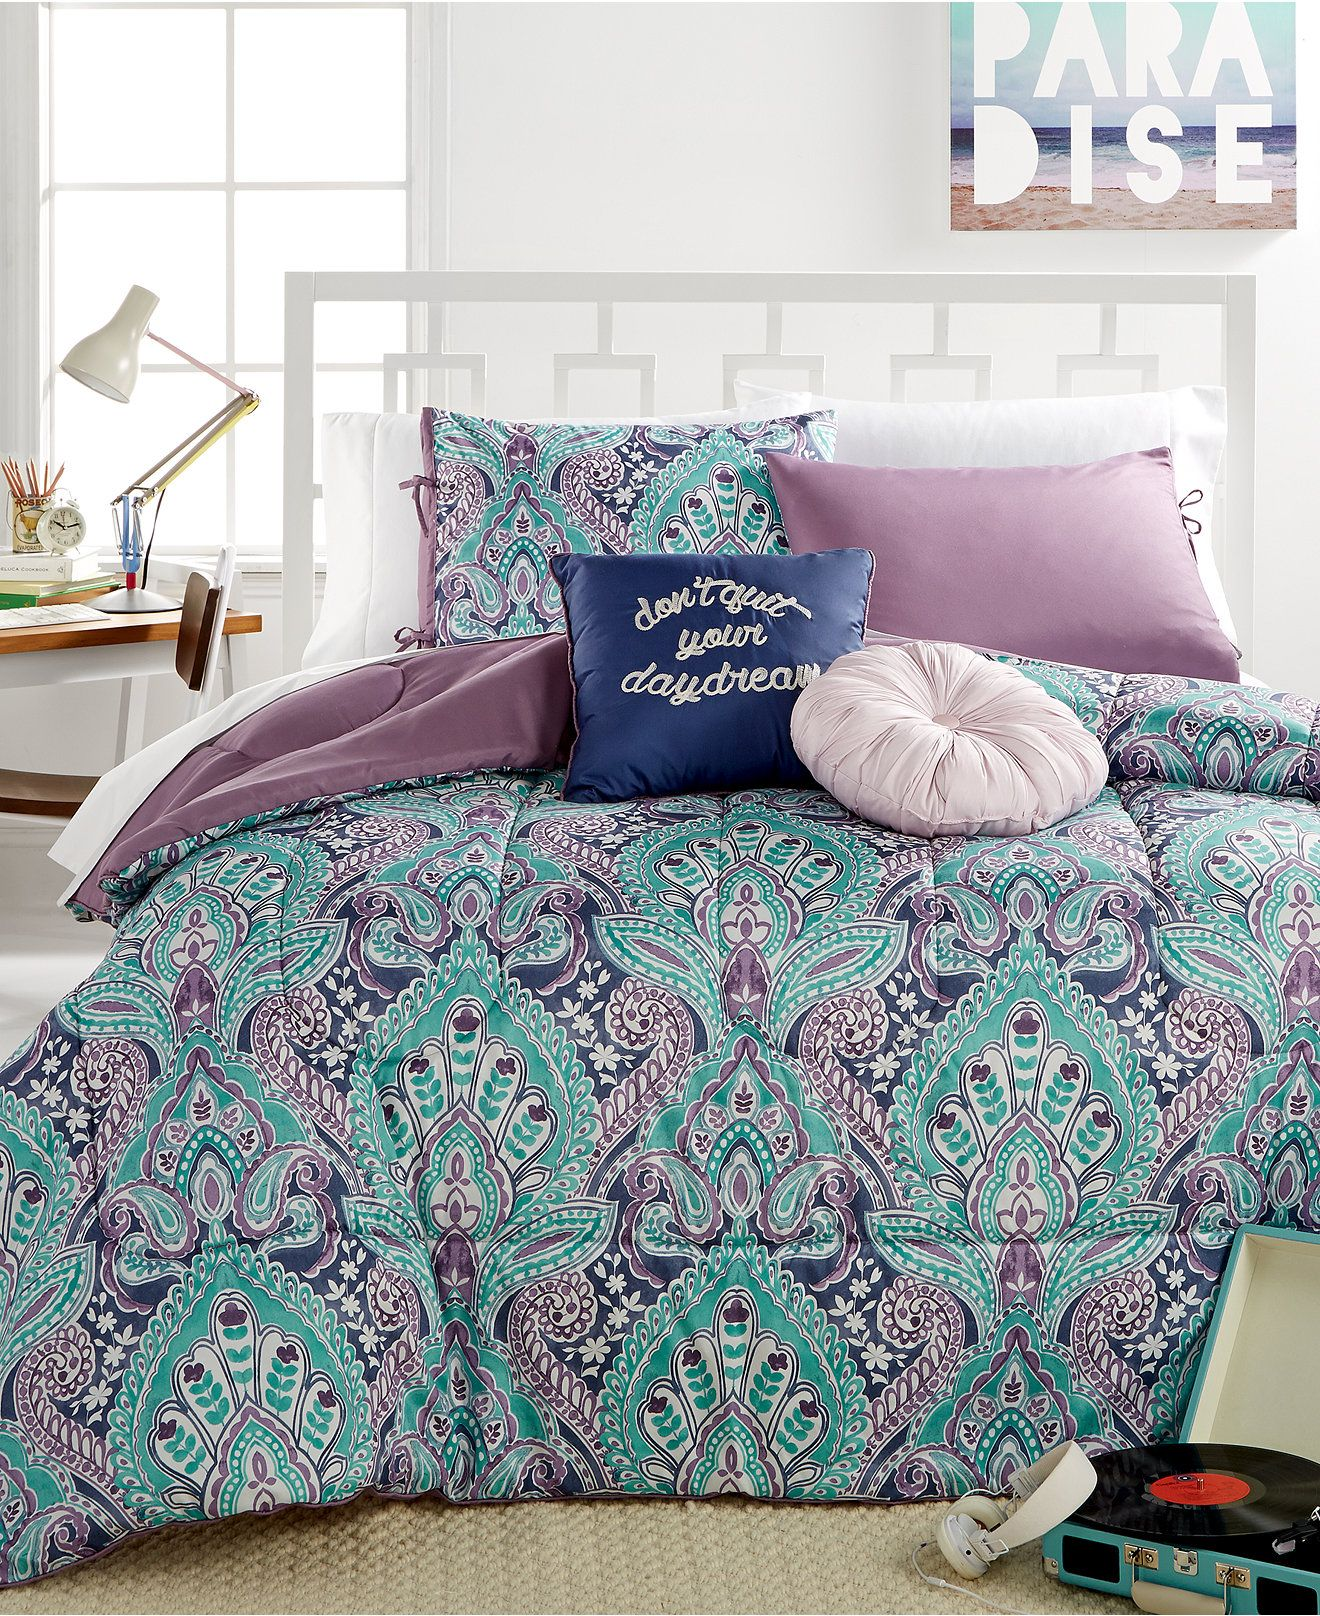 a cabin size mainstays bedding bag xl ip in walmart bed coordinating twin set comforter com